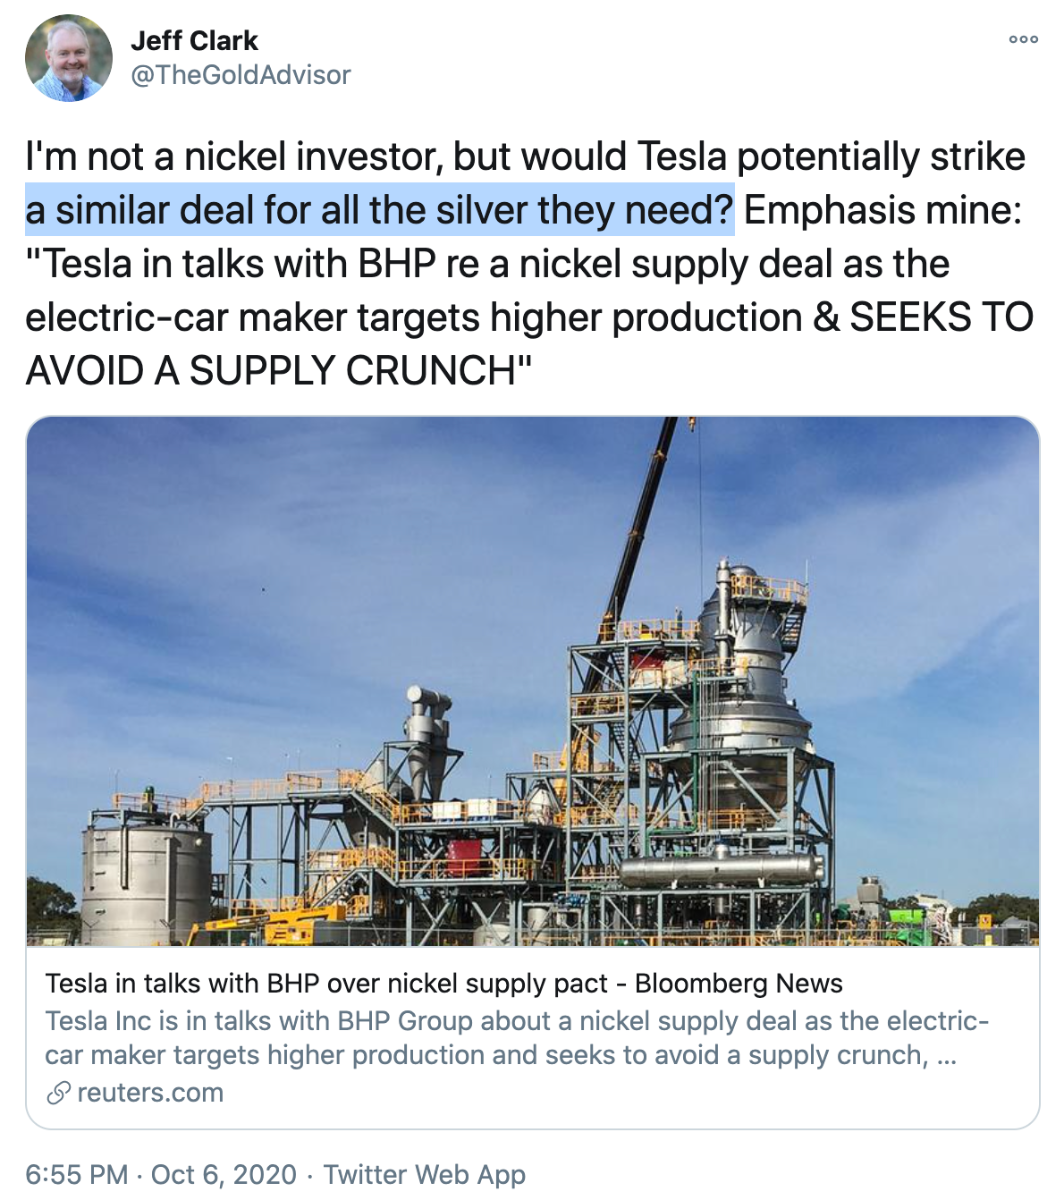 IMAGE - Tesla Silver Demand may require buying directly from miners SD Bullion